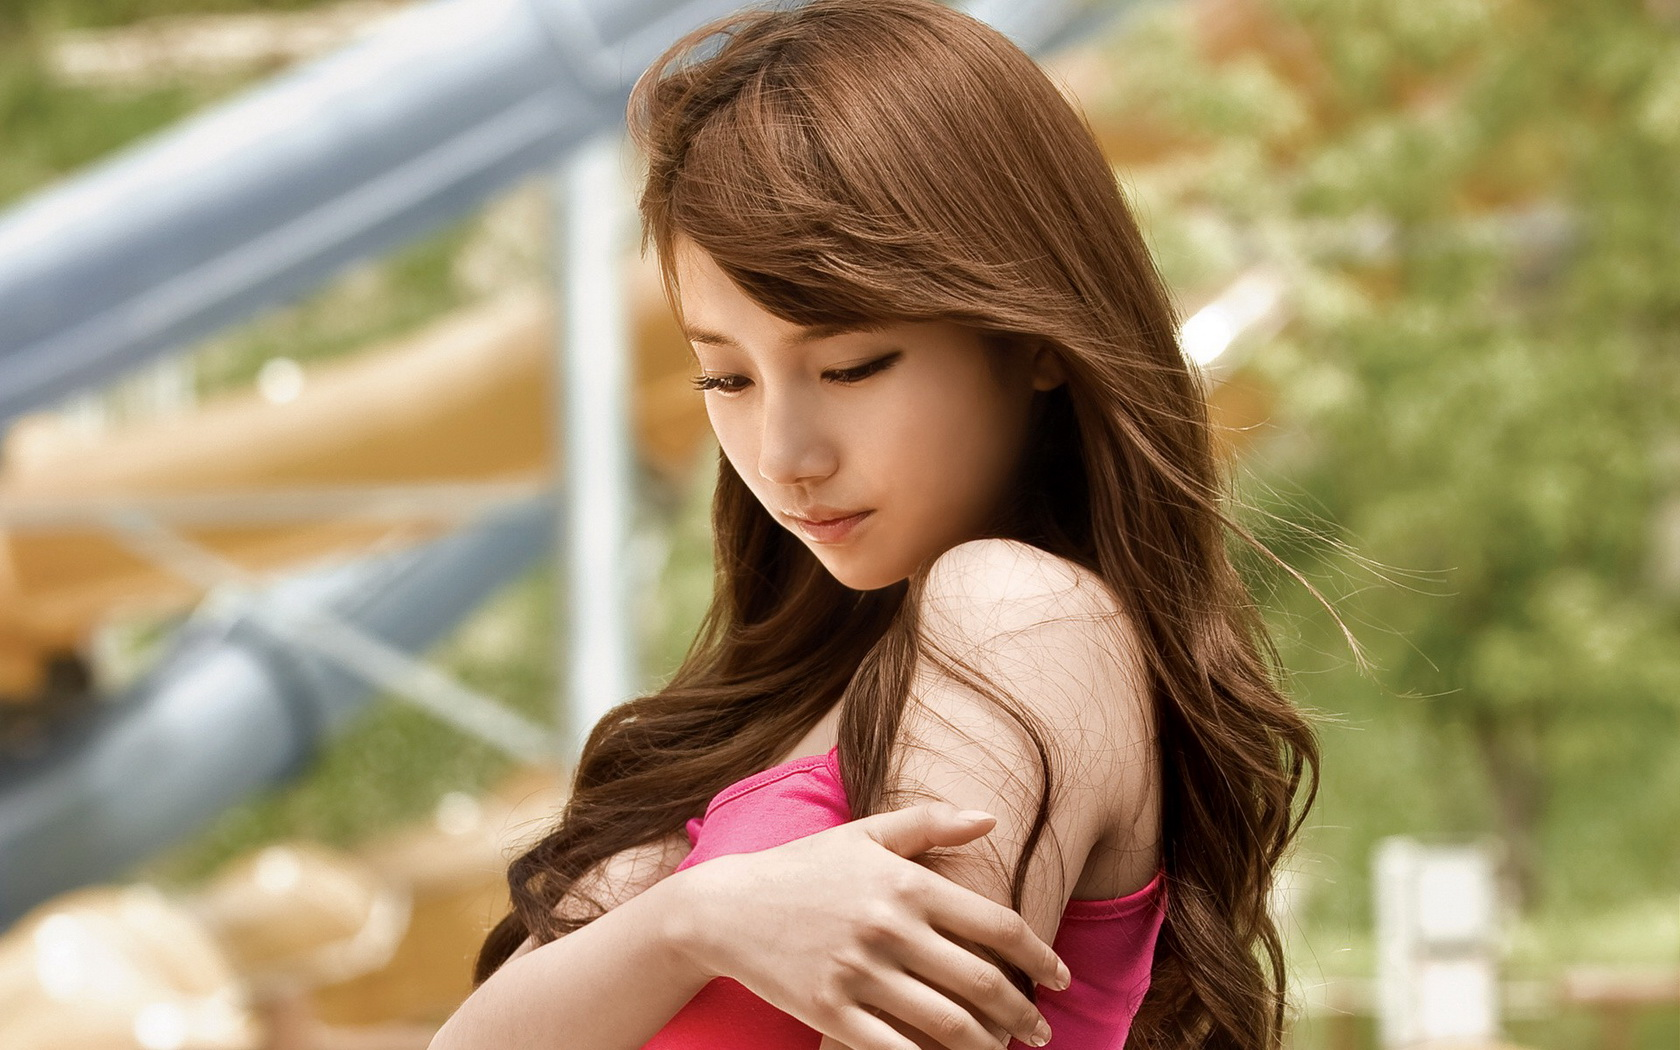 Asian girl long hair beautiful bare shoulder wallpaper 1680x1050 148861 wallpaperup - Asian schoolgirl wallpaper ...